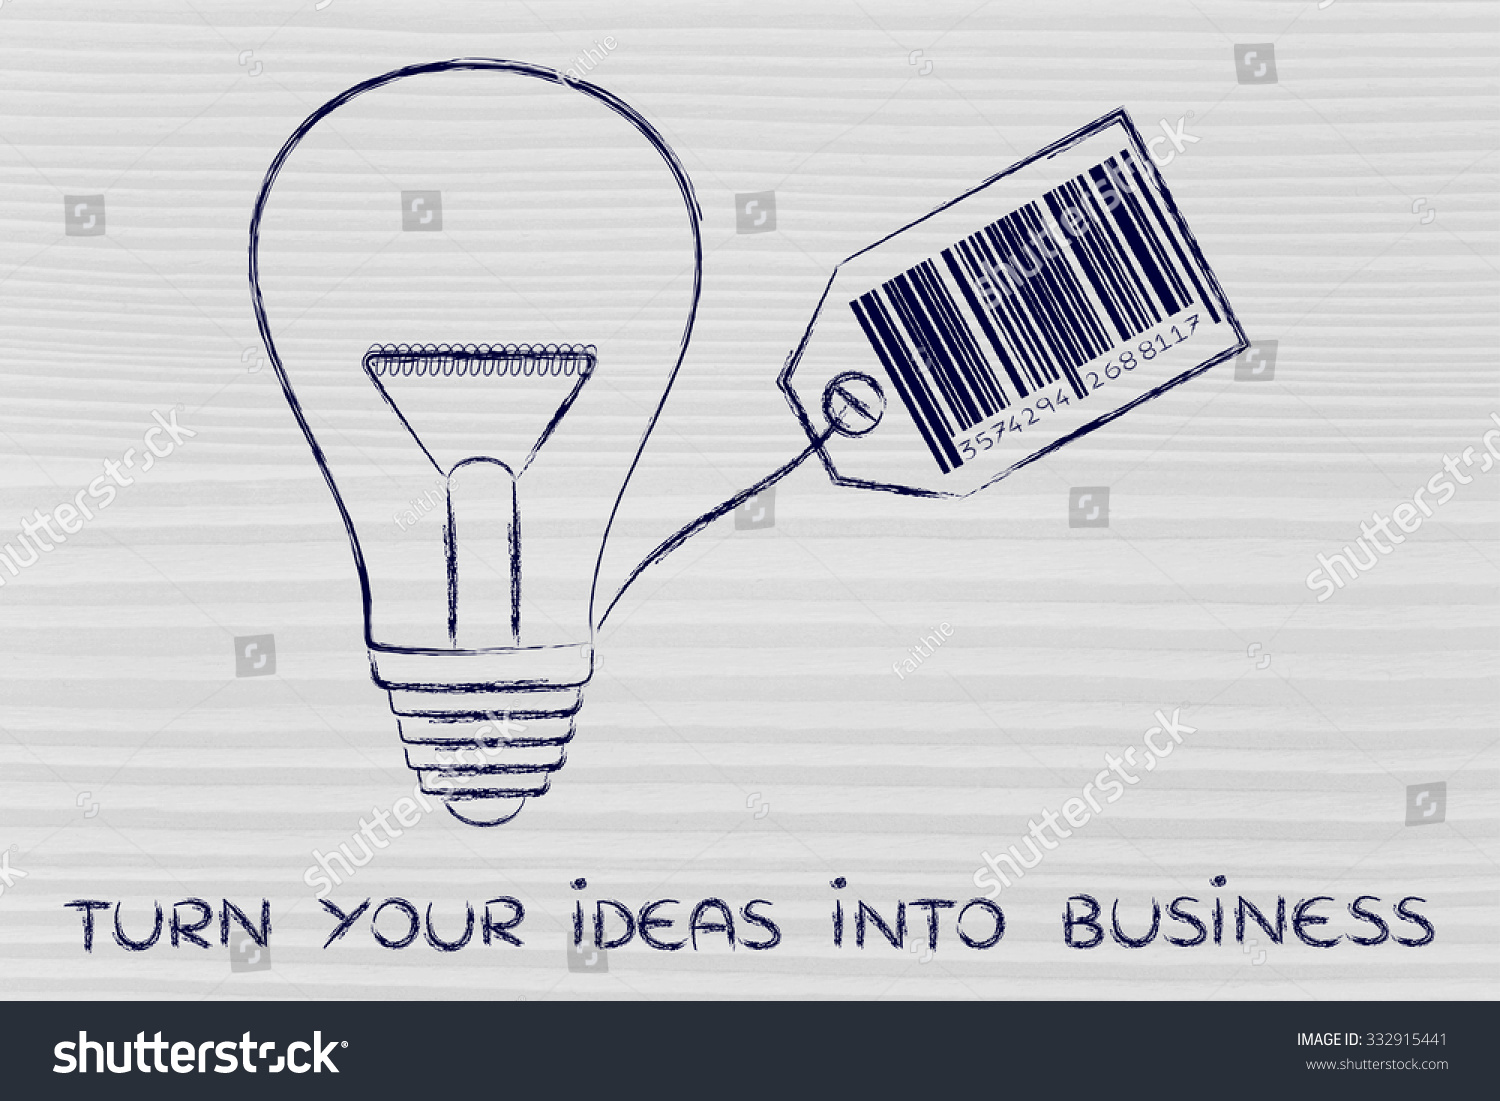 Royalty Free Stock Illustration Of Turn Your Ideas Into Business Incandescent Light Bulb Diagram Group Picture Image By Tag Lightbulb With Price And Bar Code